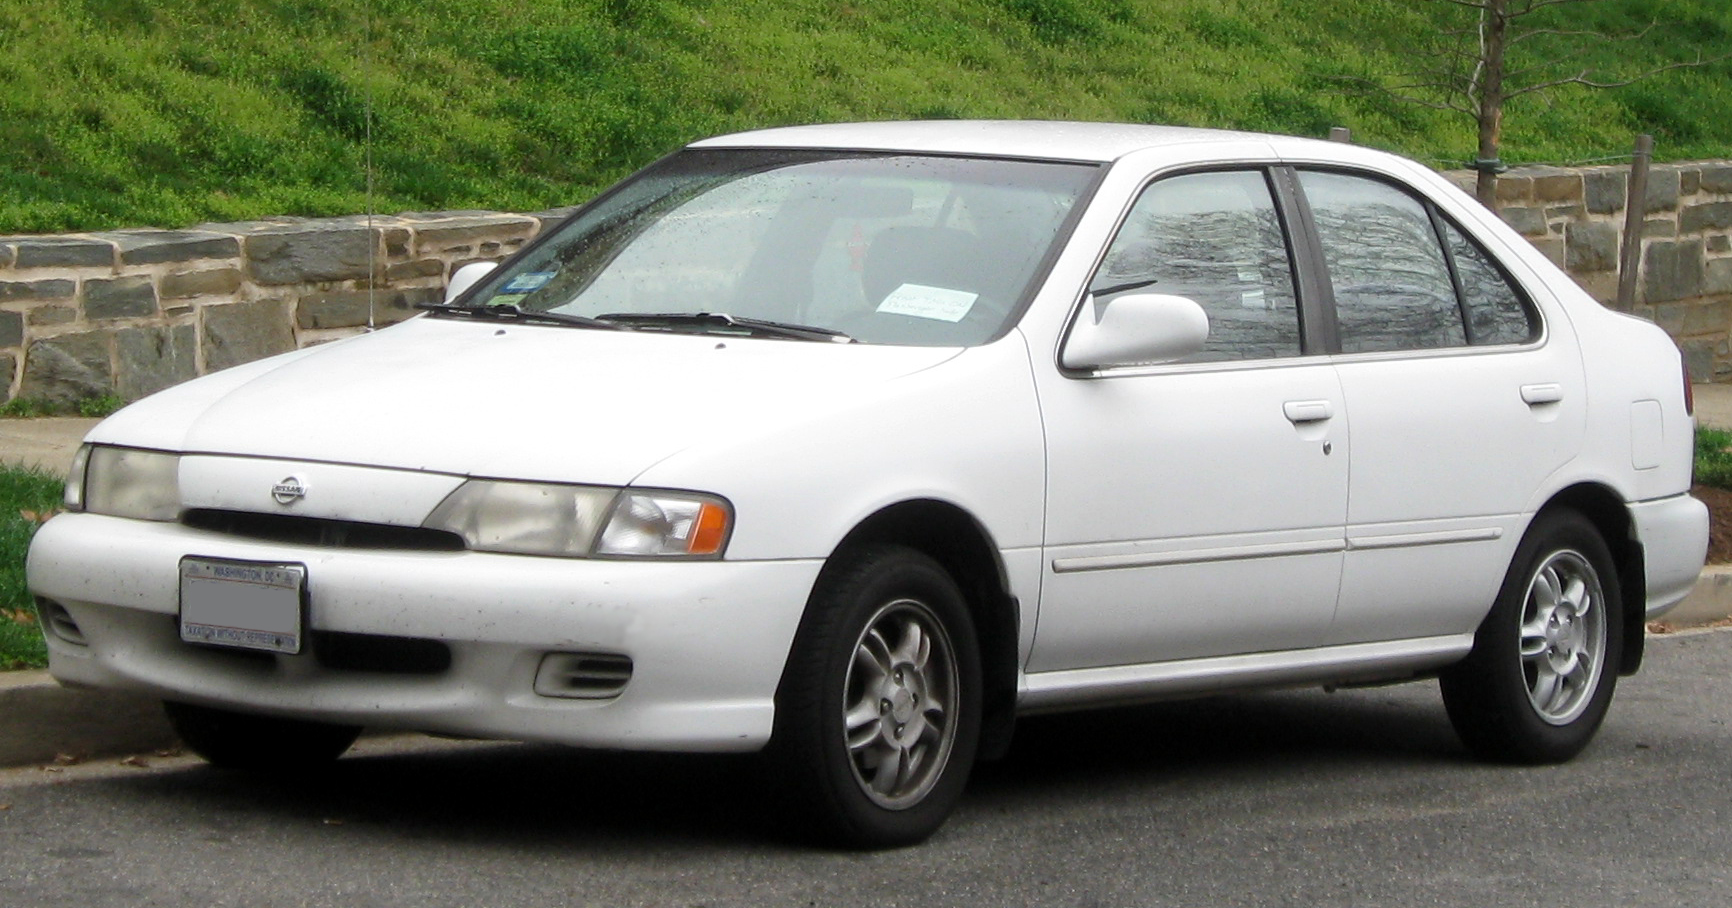 hight resolution of nissan sentra 2001 gxe engine diagram 2001 nissan sentra 2004 nissan sentra fuse diagram 2007 nissan